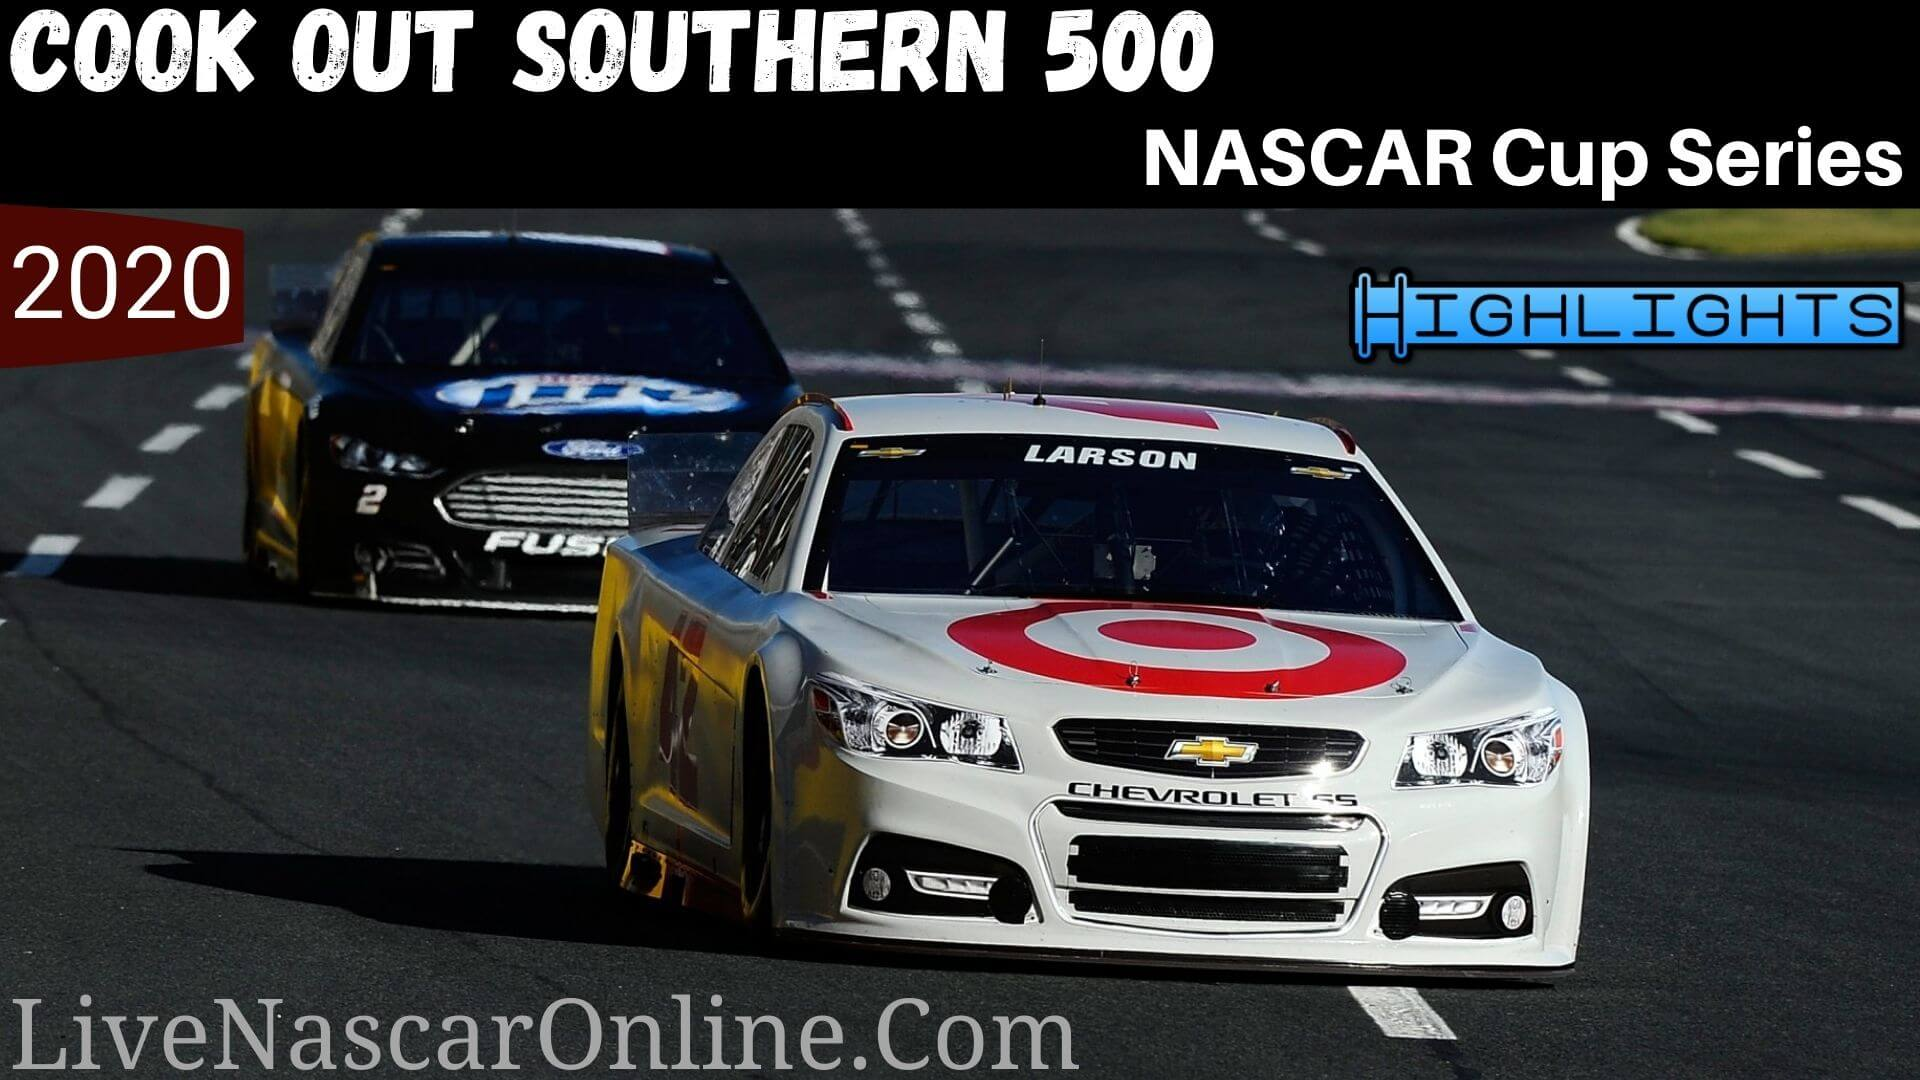 Cook Out SOUTHERN 500 Nascar Cup Series Highlights 2020